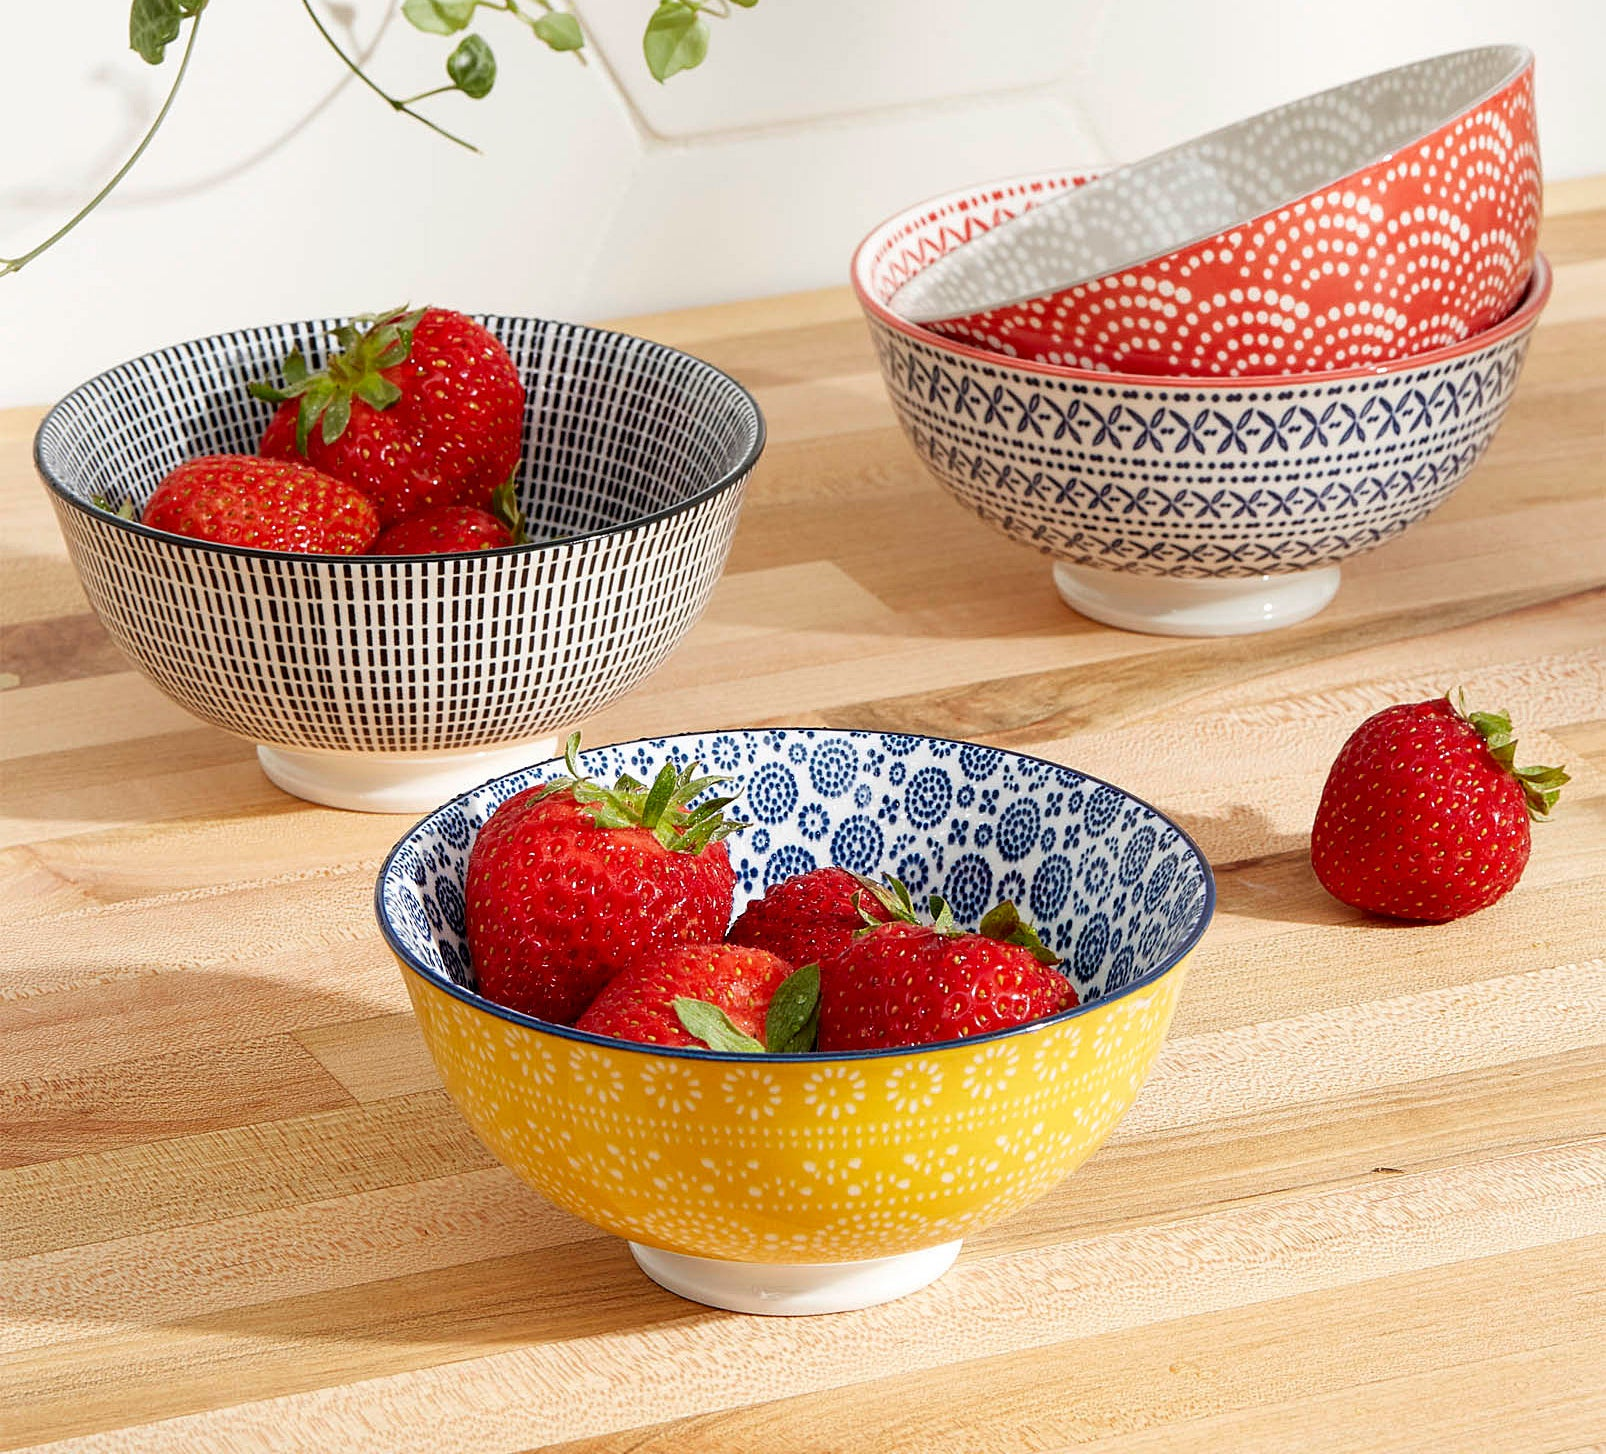 Four fun and fresh patterned bowls with strawberries